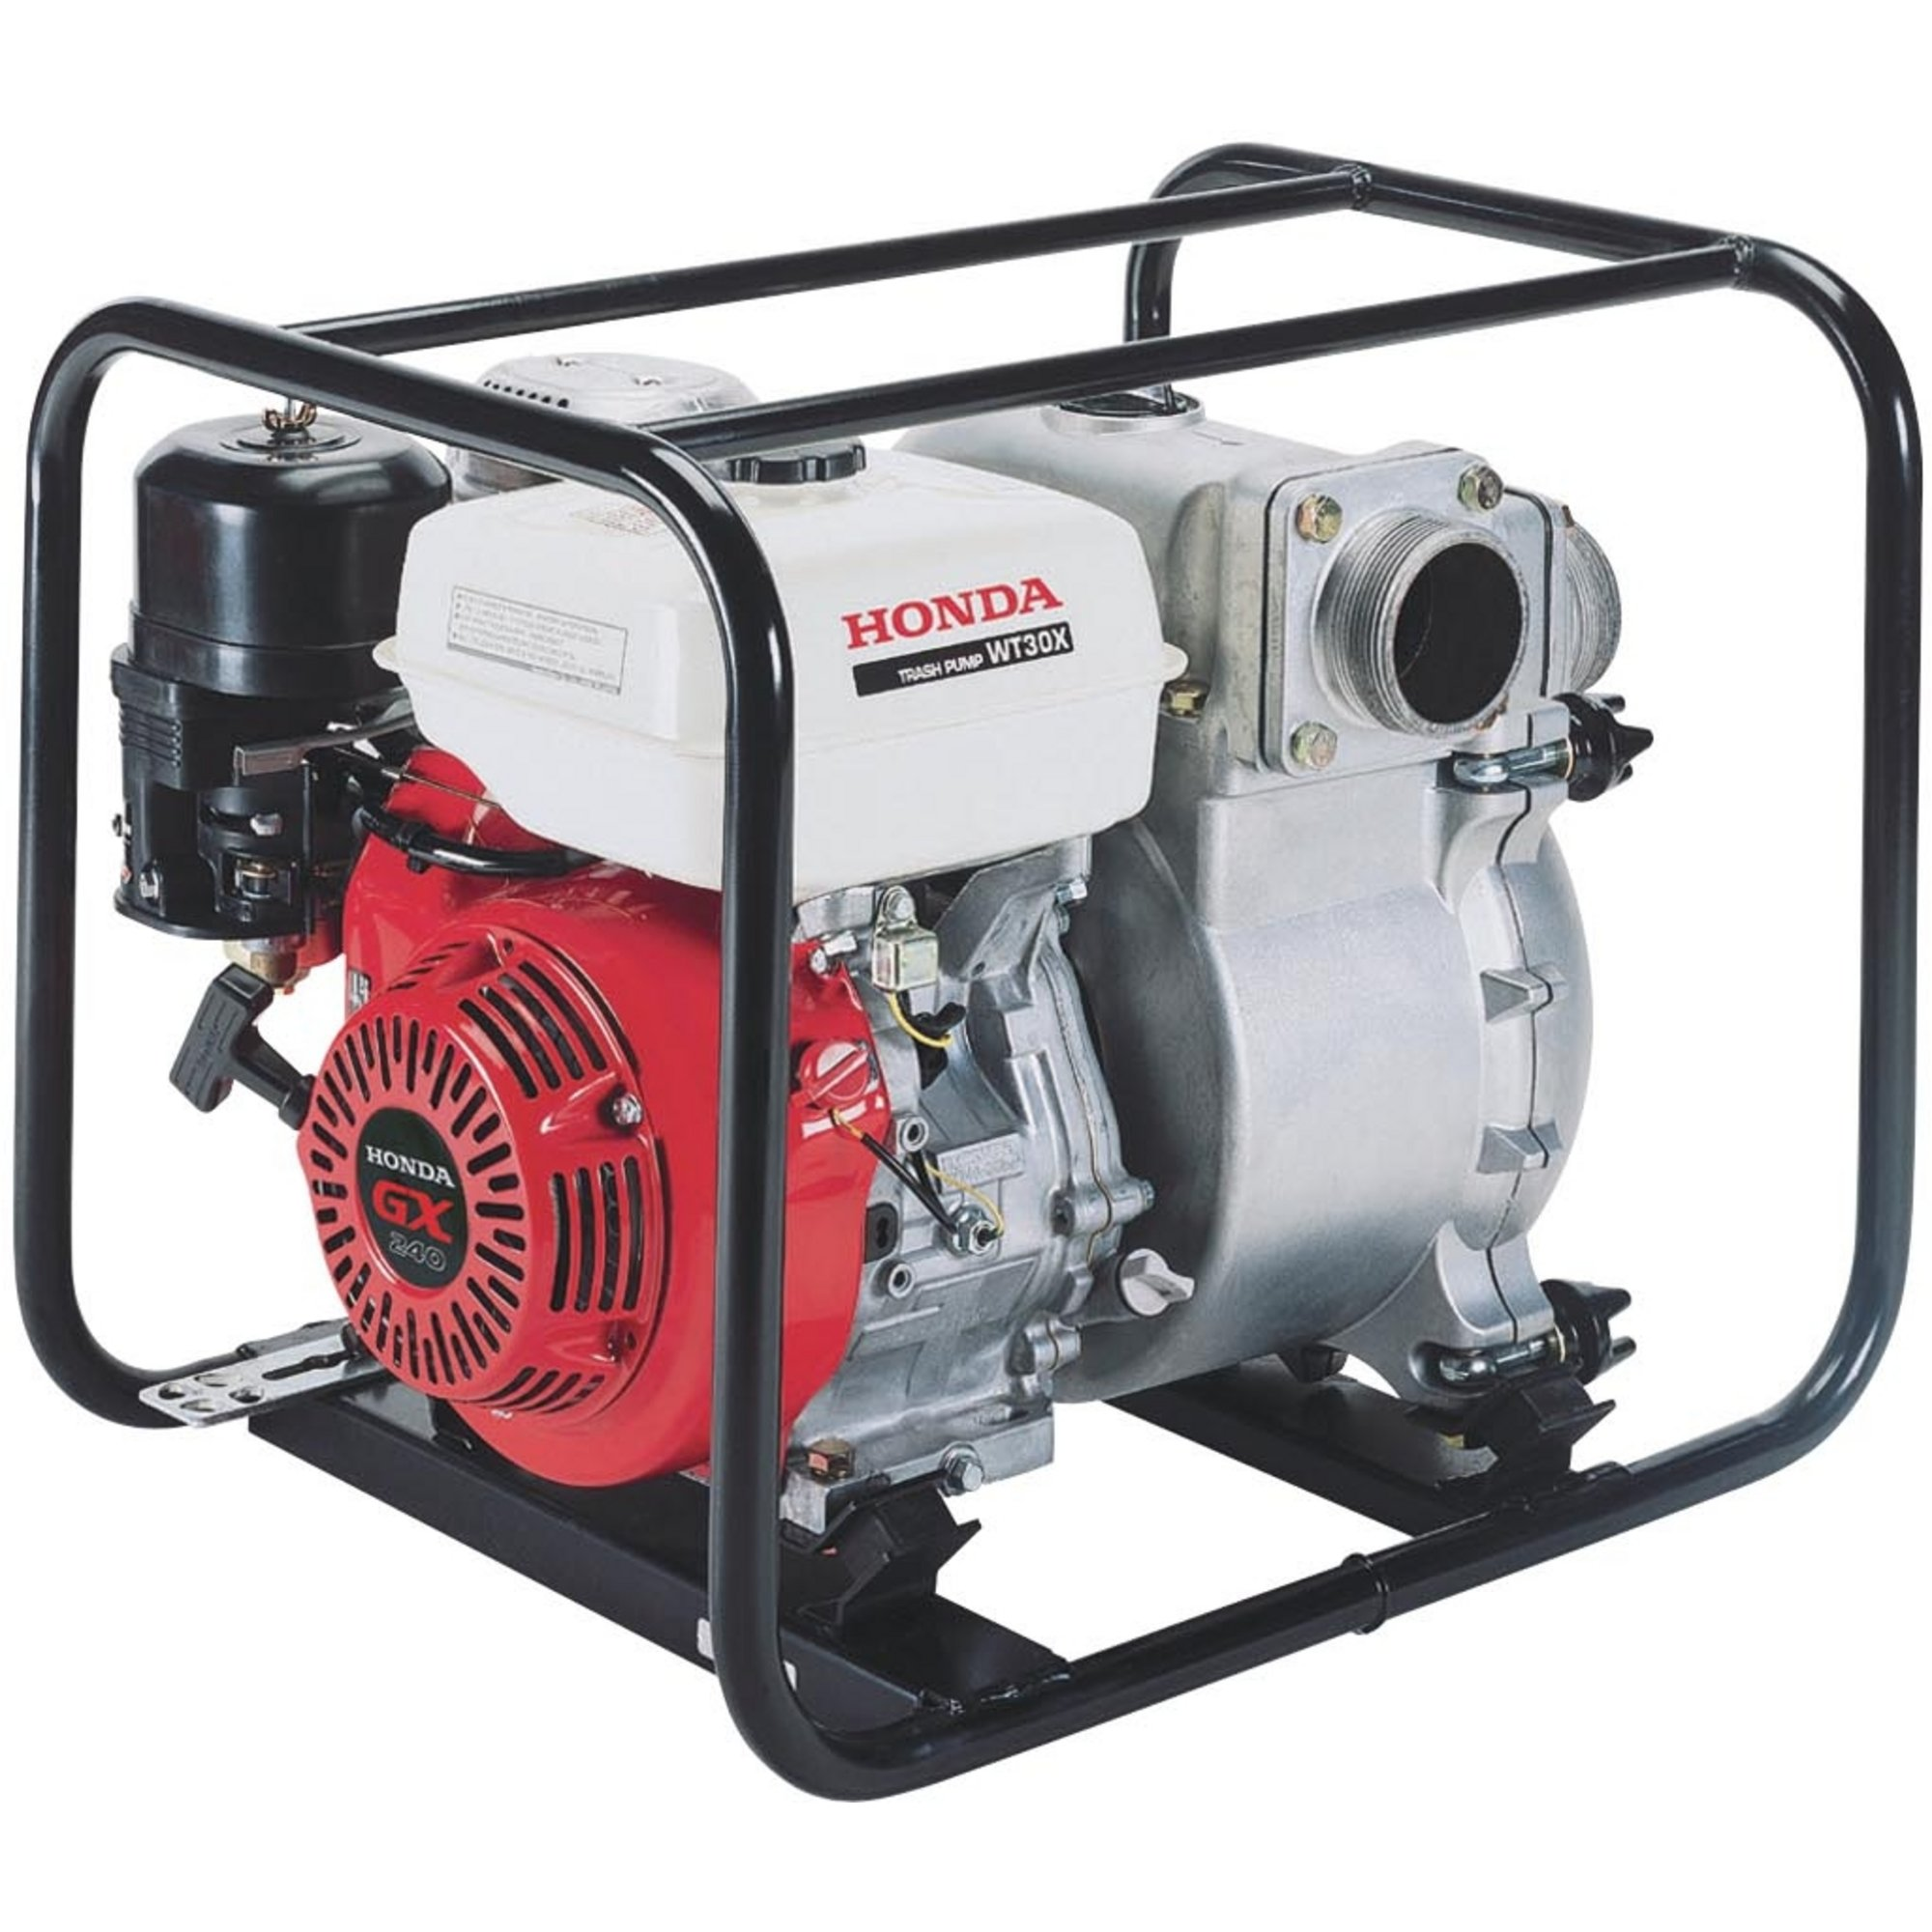 Water Pump Maintenance | Honda Lawn Parts Blog